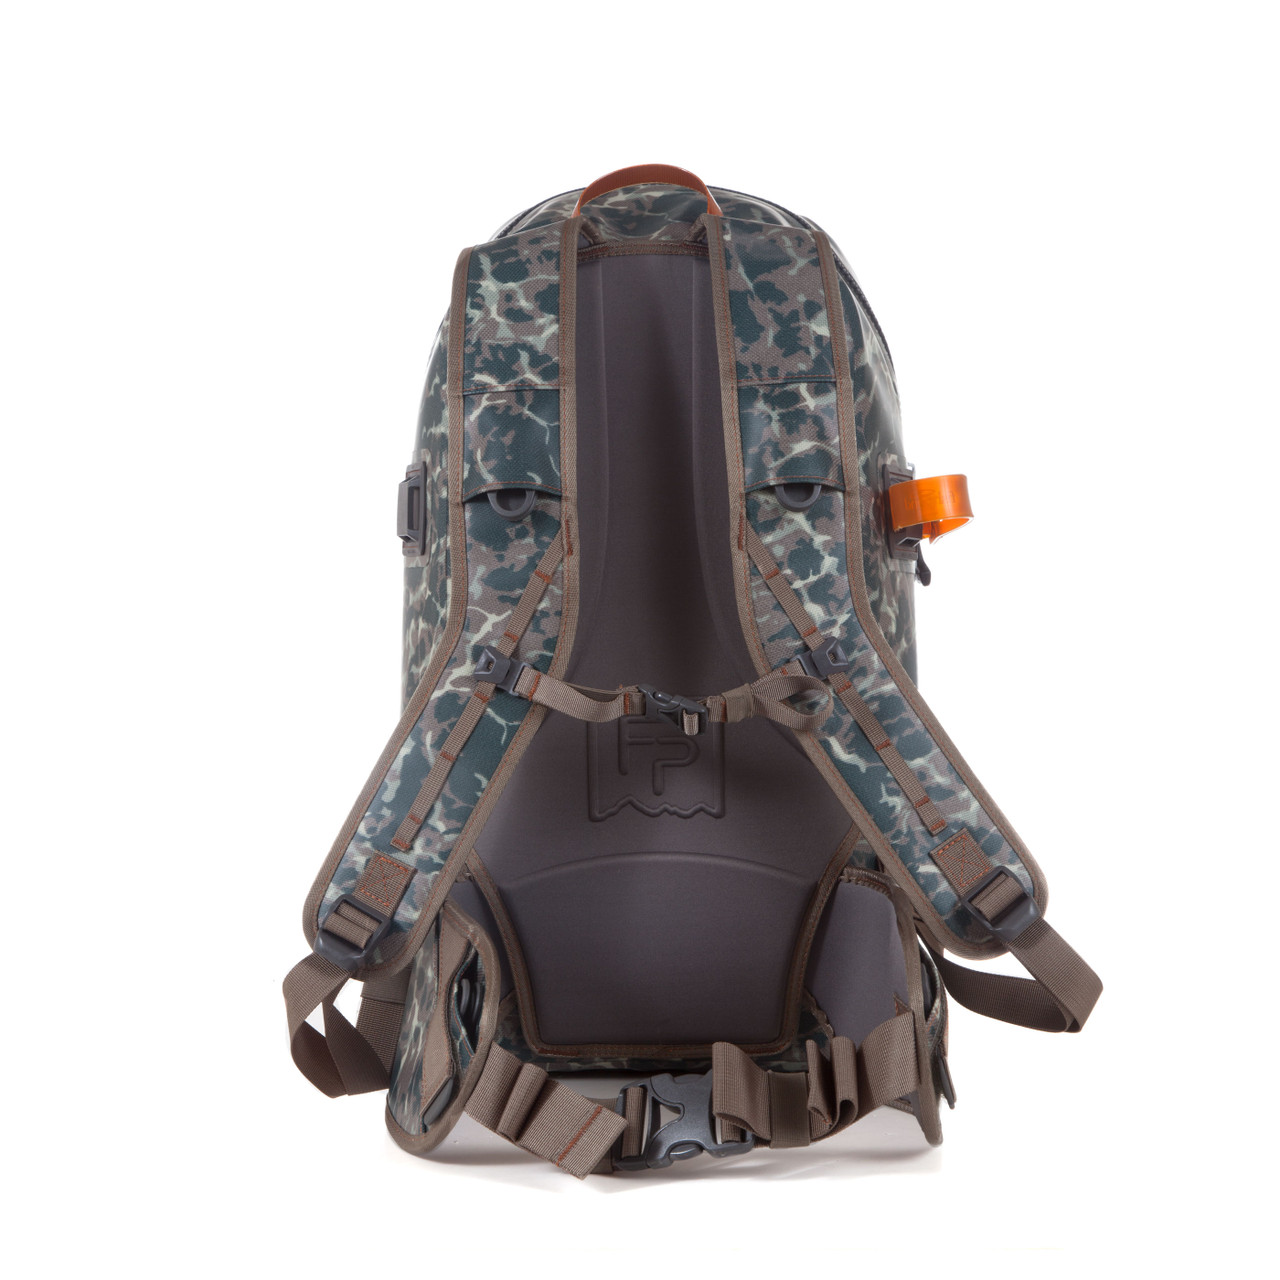 Fishpond Thunderhead Submersible Backpack, Riverbed Camo